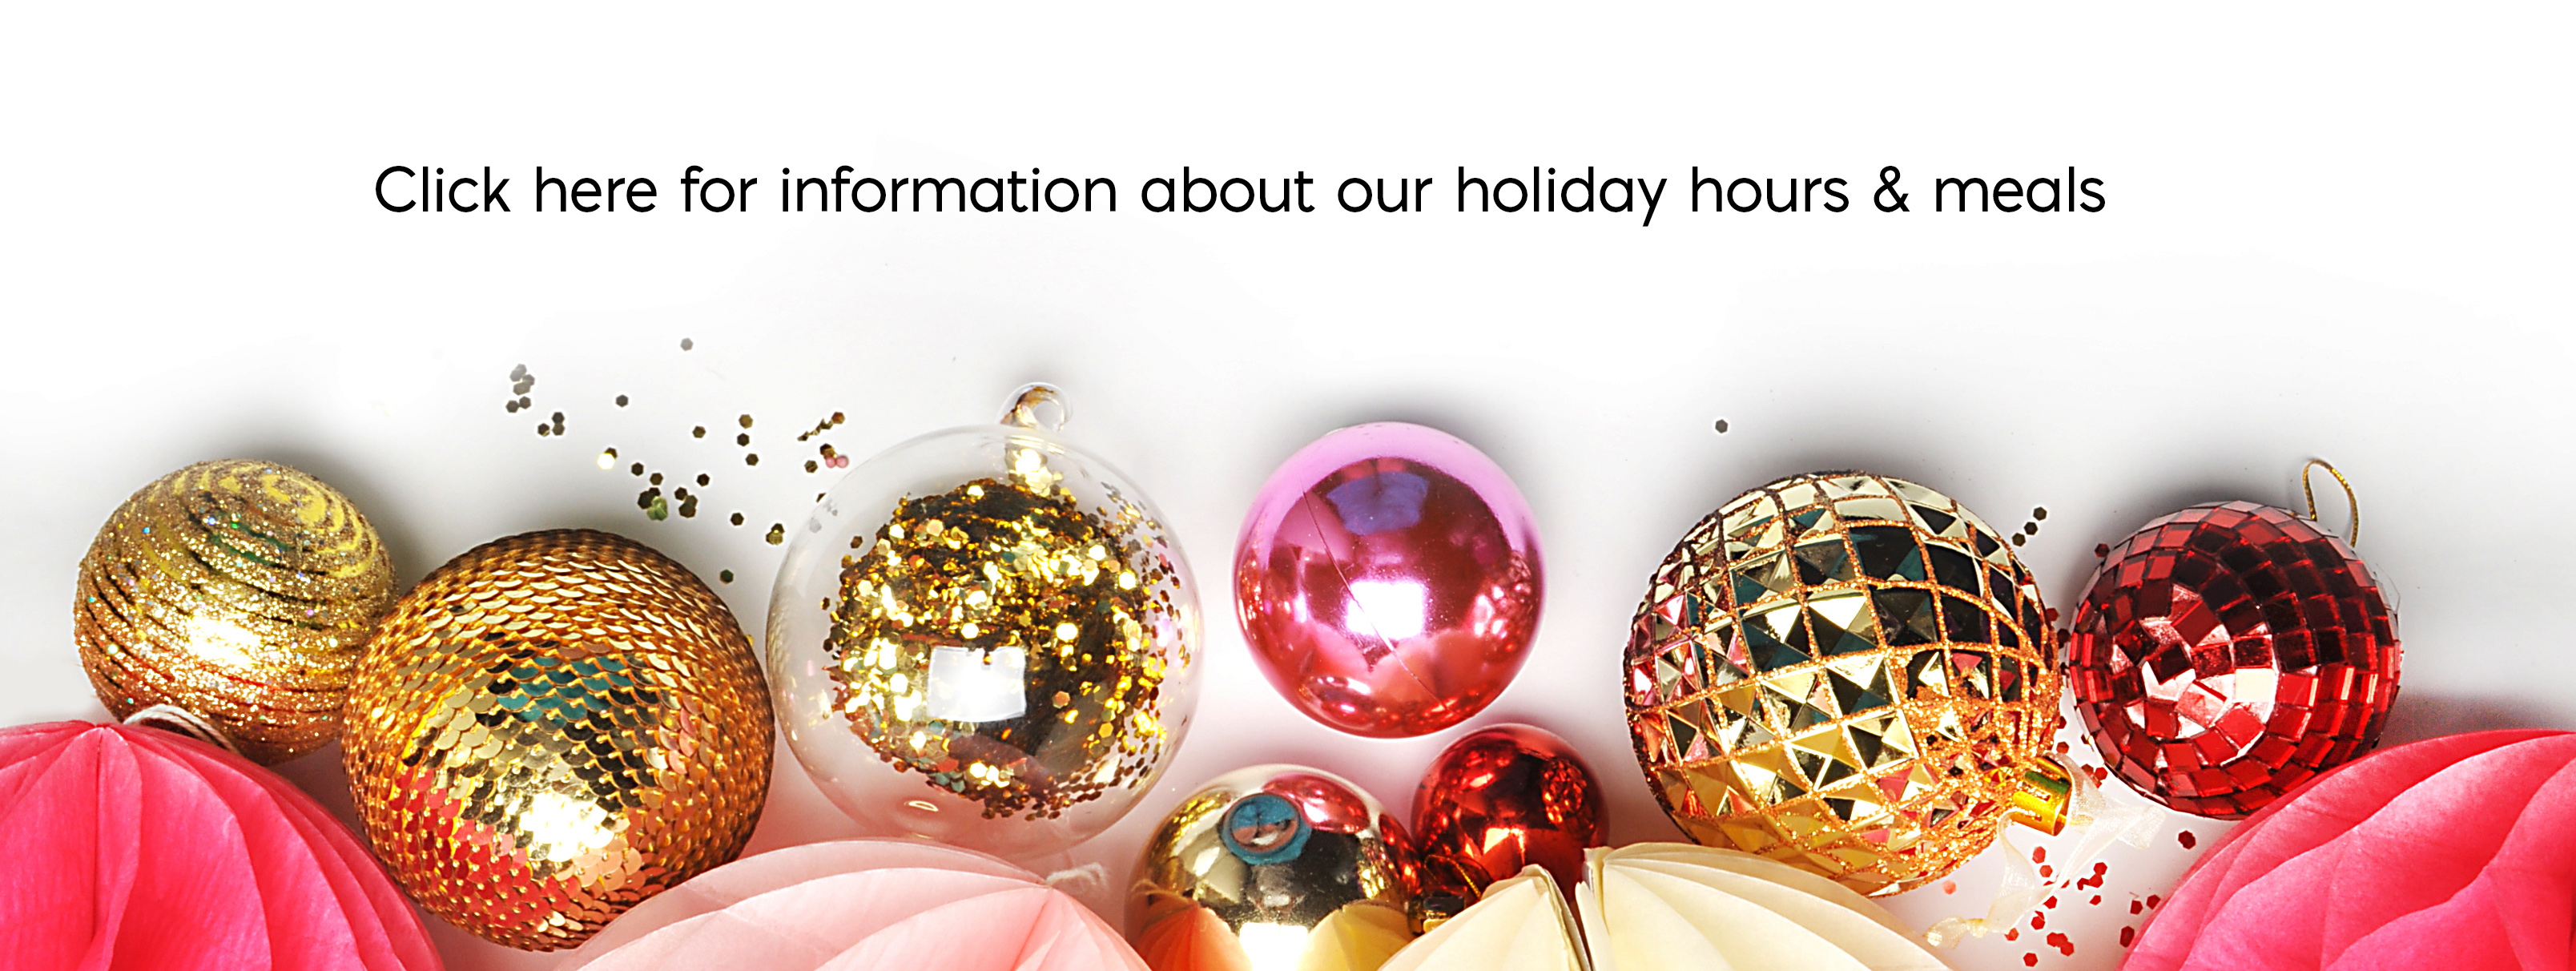 Click here for holiday information.jpg